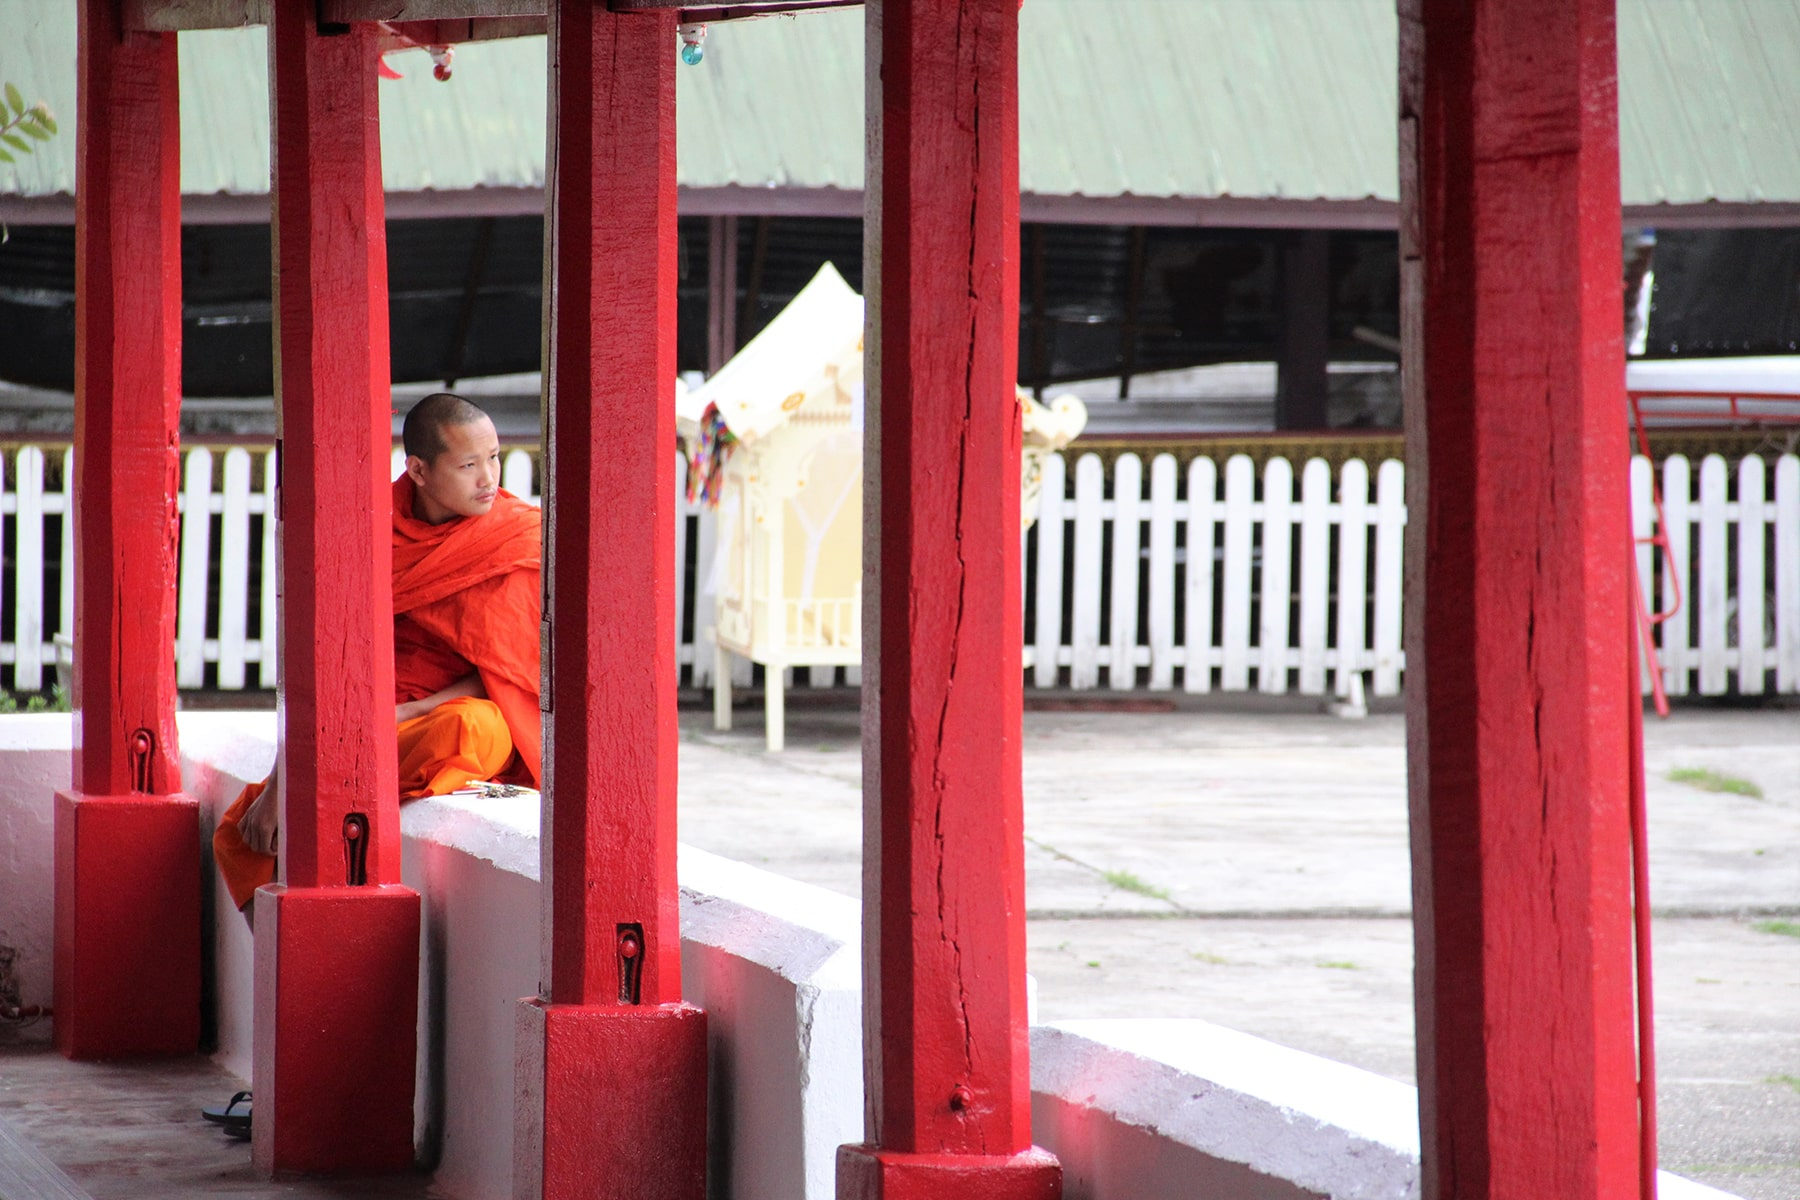 A monk between red columns in Wat Mai Suwannaphumaham Luang Prabang, Laos